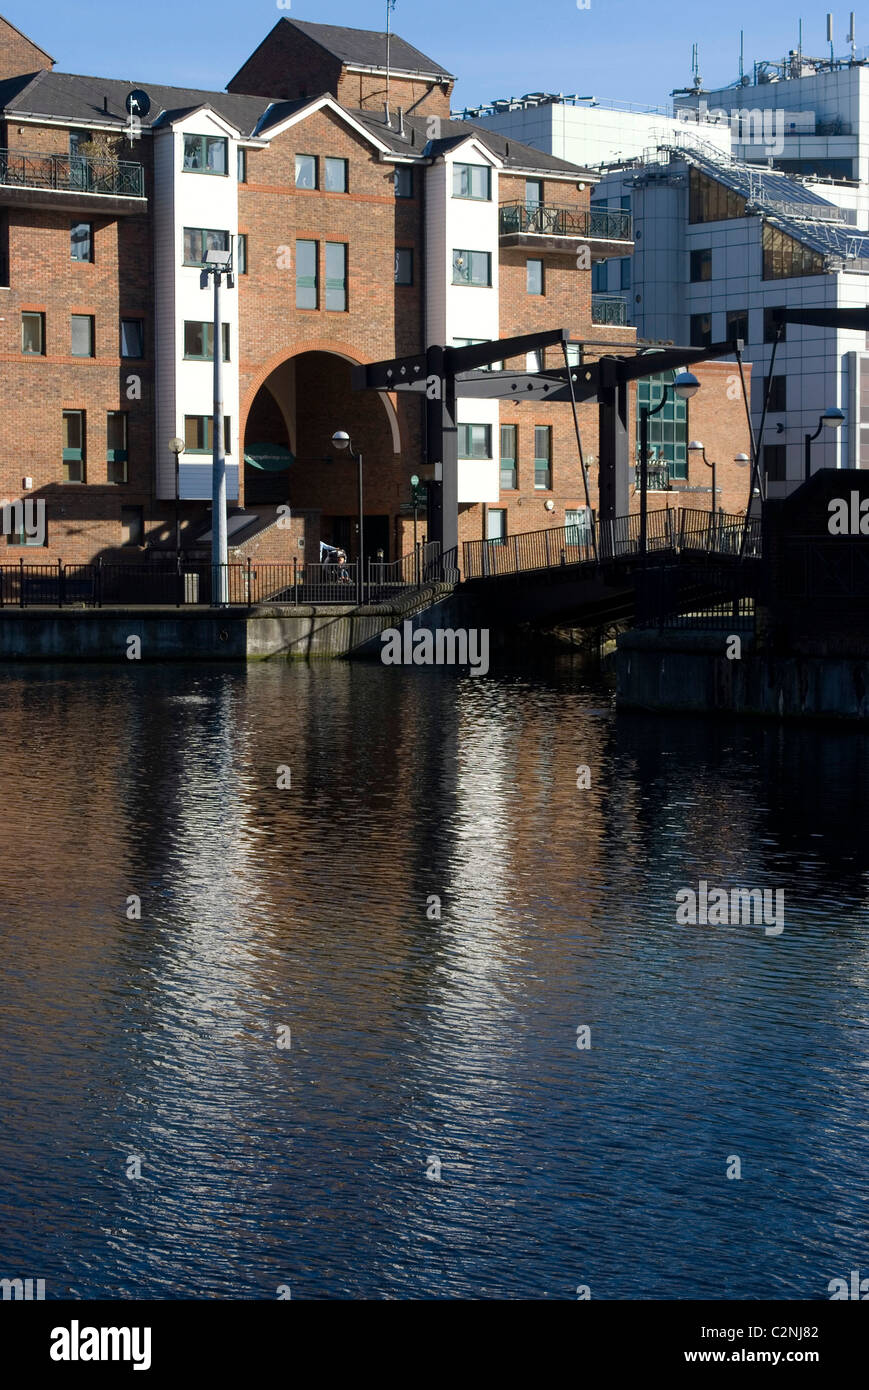 Glengall Bridge, a Dutch-style lift bridge in the heart of Docklands, near Canary Wharf, Isle of Dogs, London, E14, - Stock Image